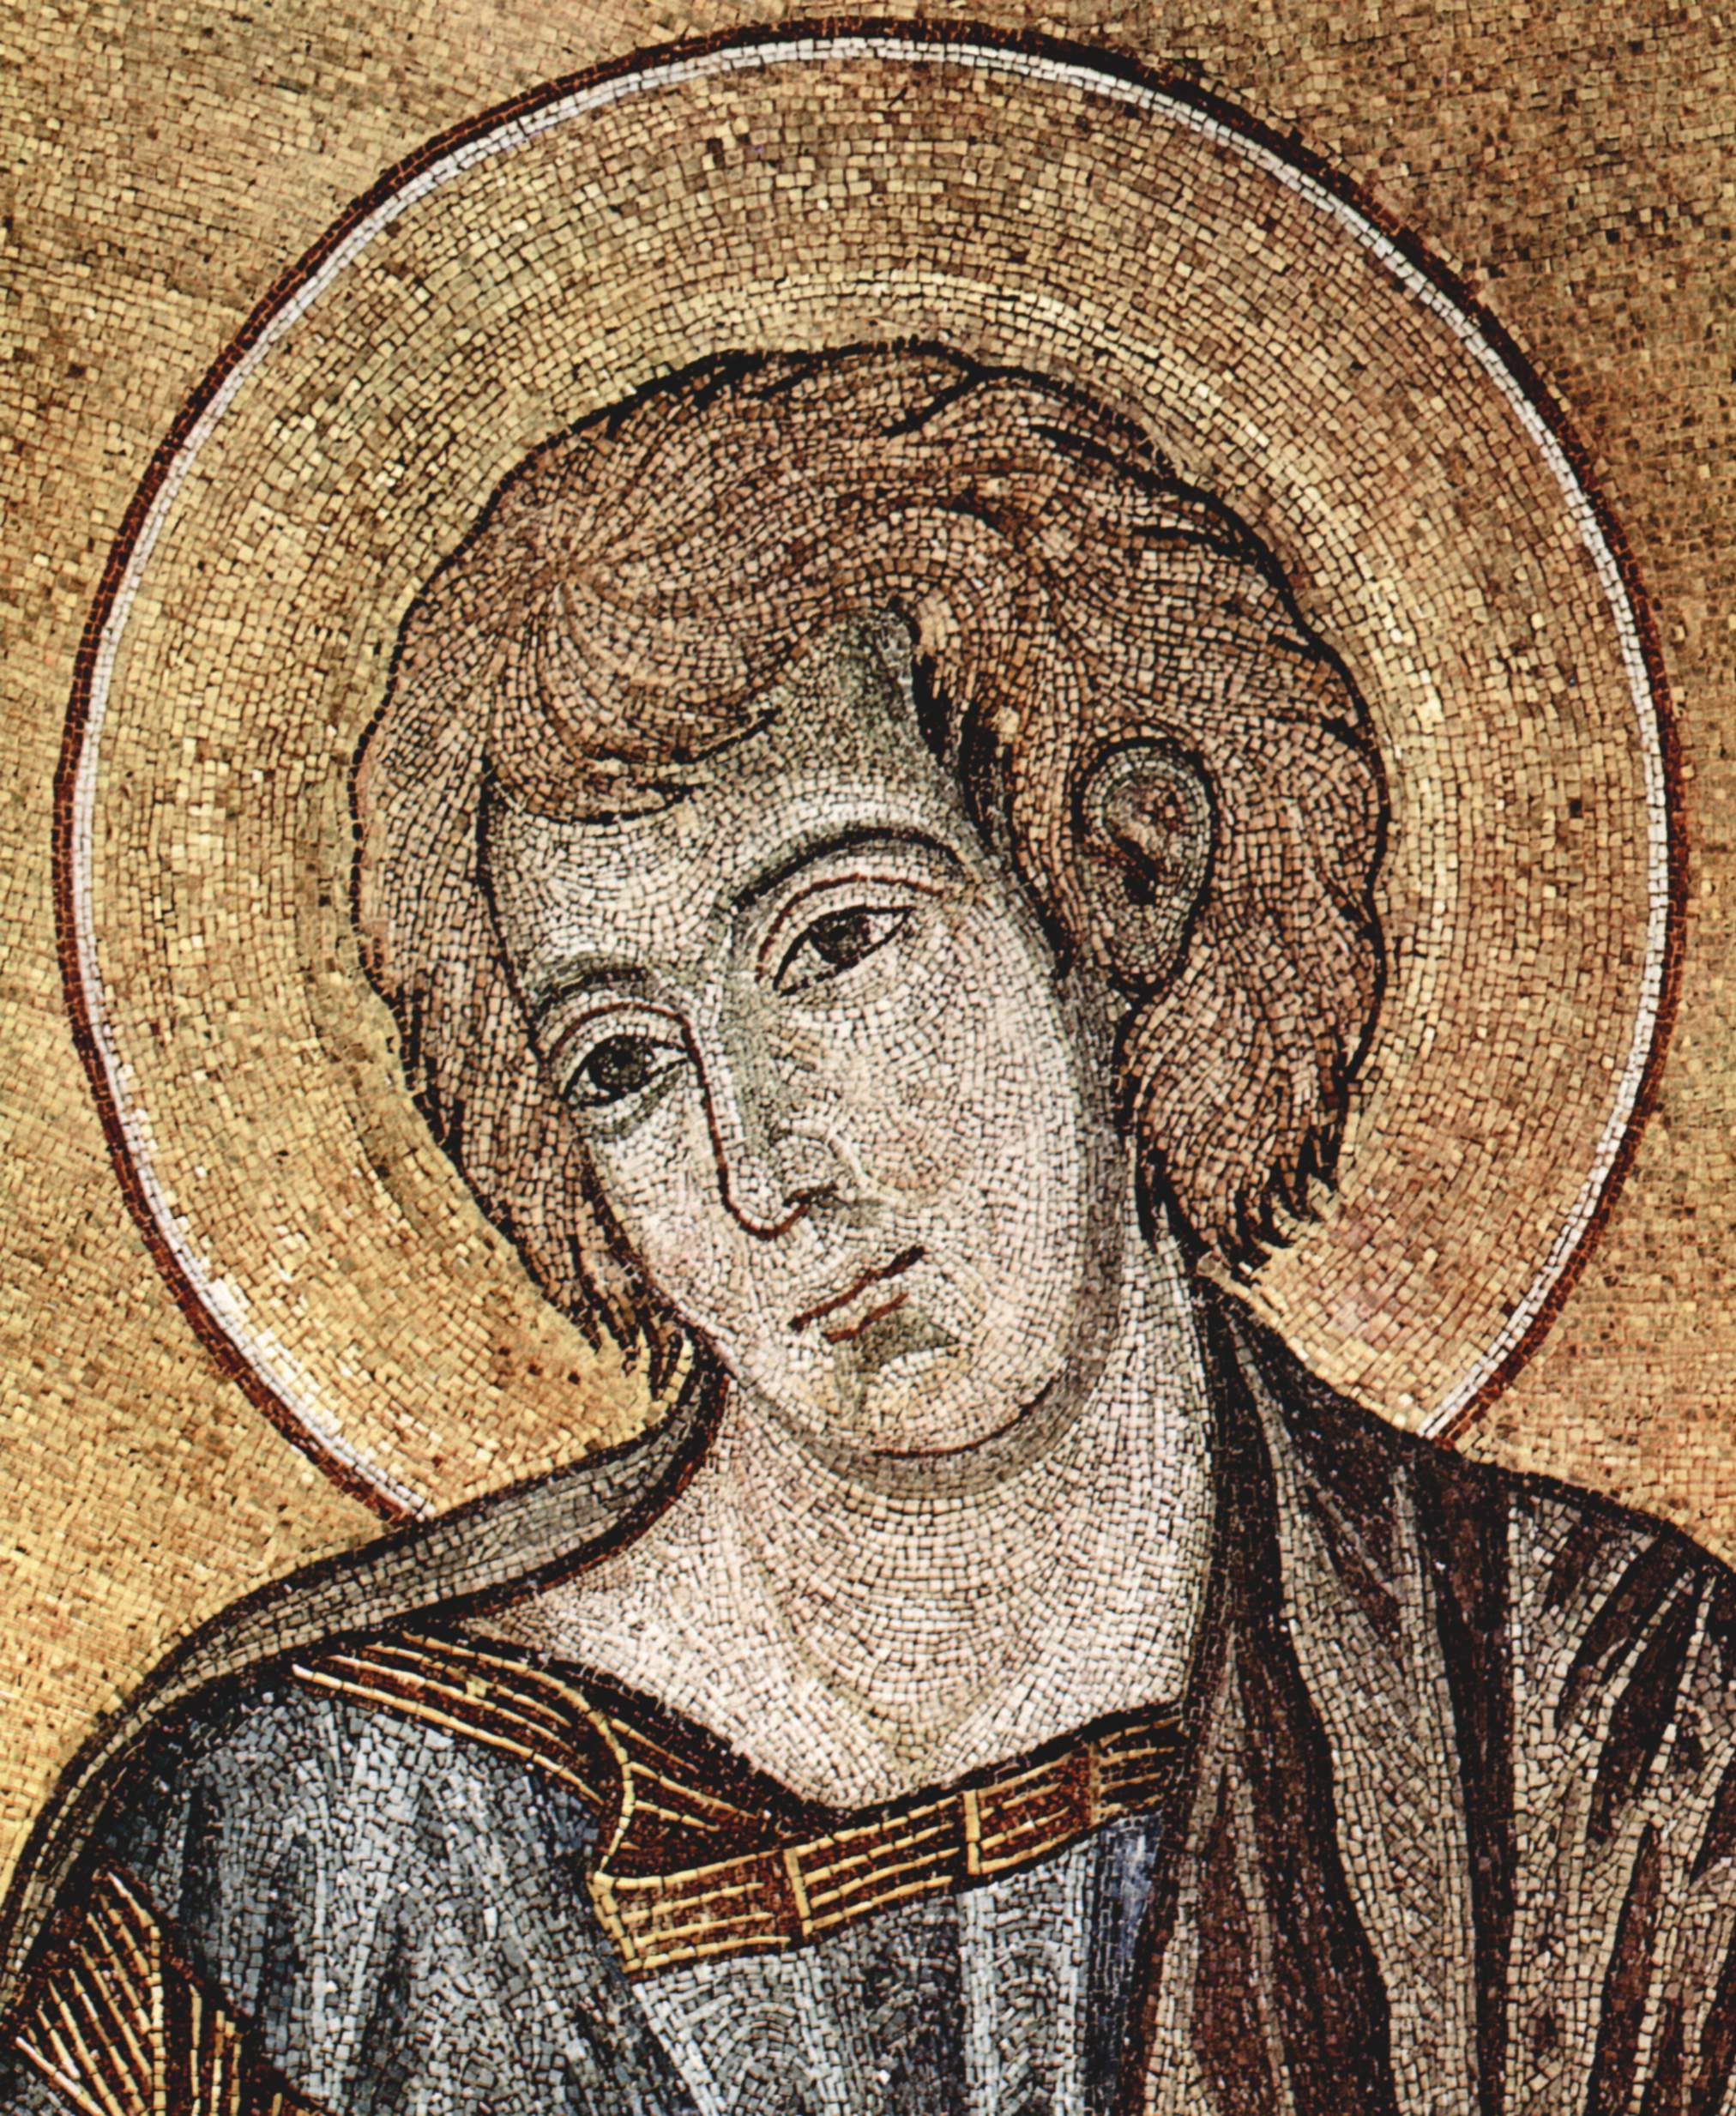 CIMABUE Christ Enthroned between the Virgin and St John the Evangelist (detail) 1301-02